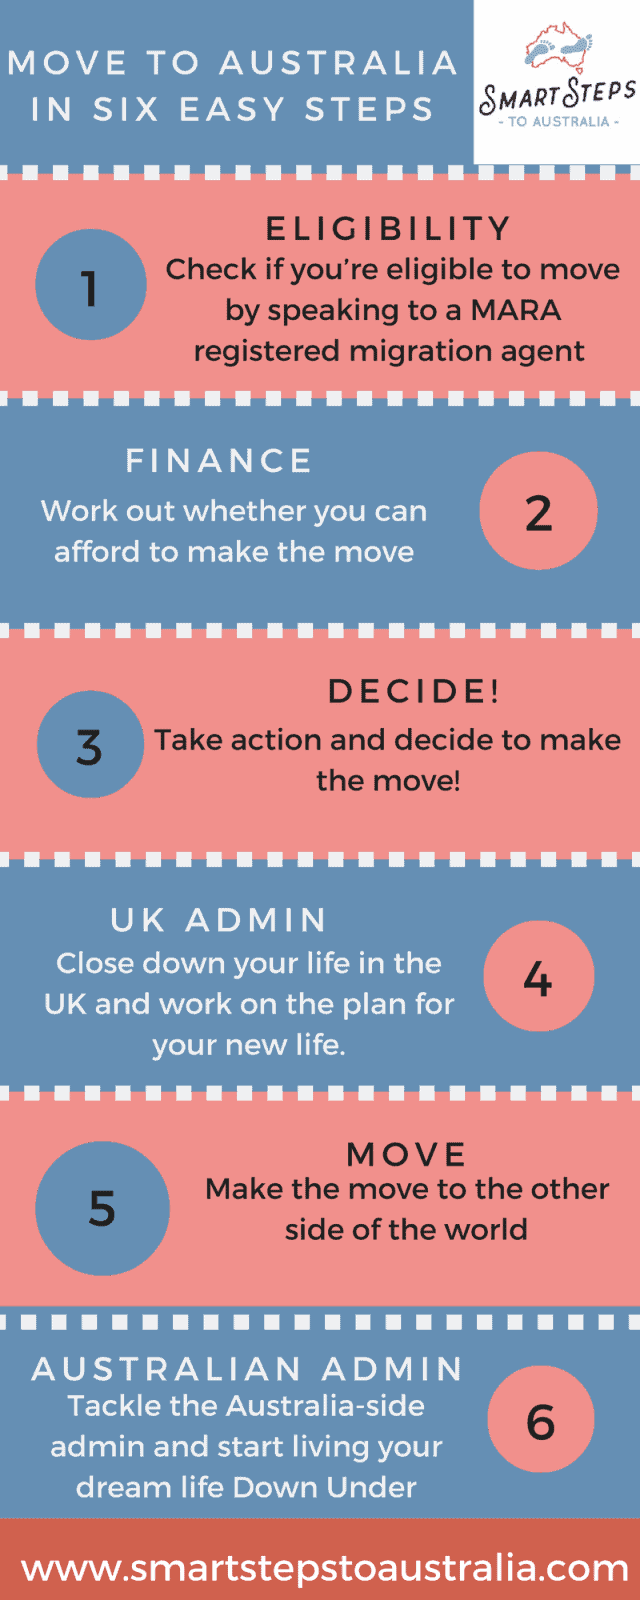 Infographic shoing six easy steps to emigrate to Australia